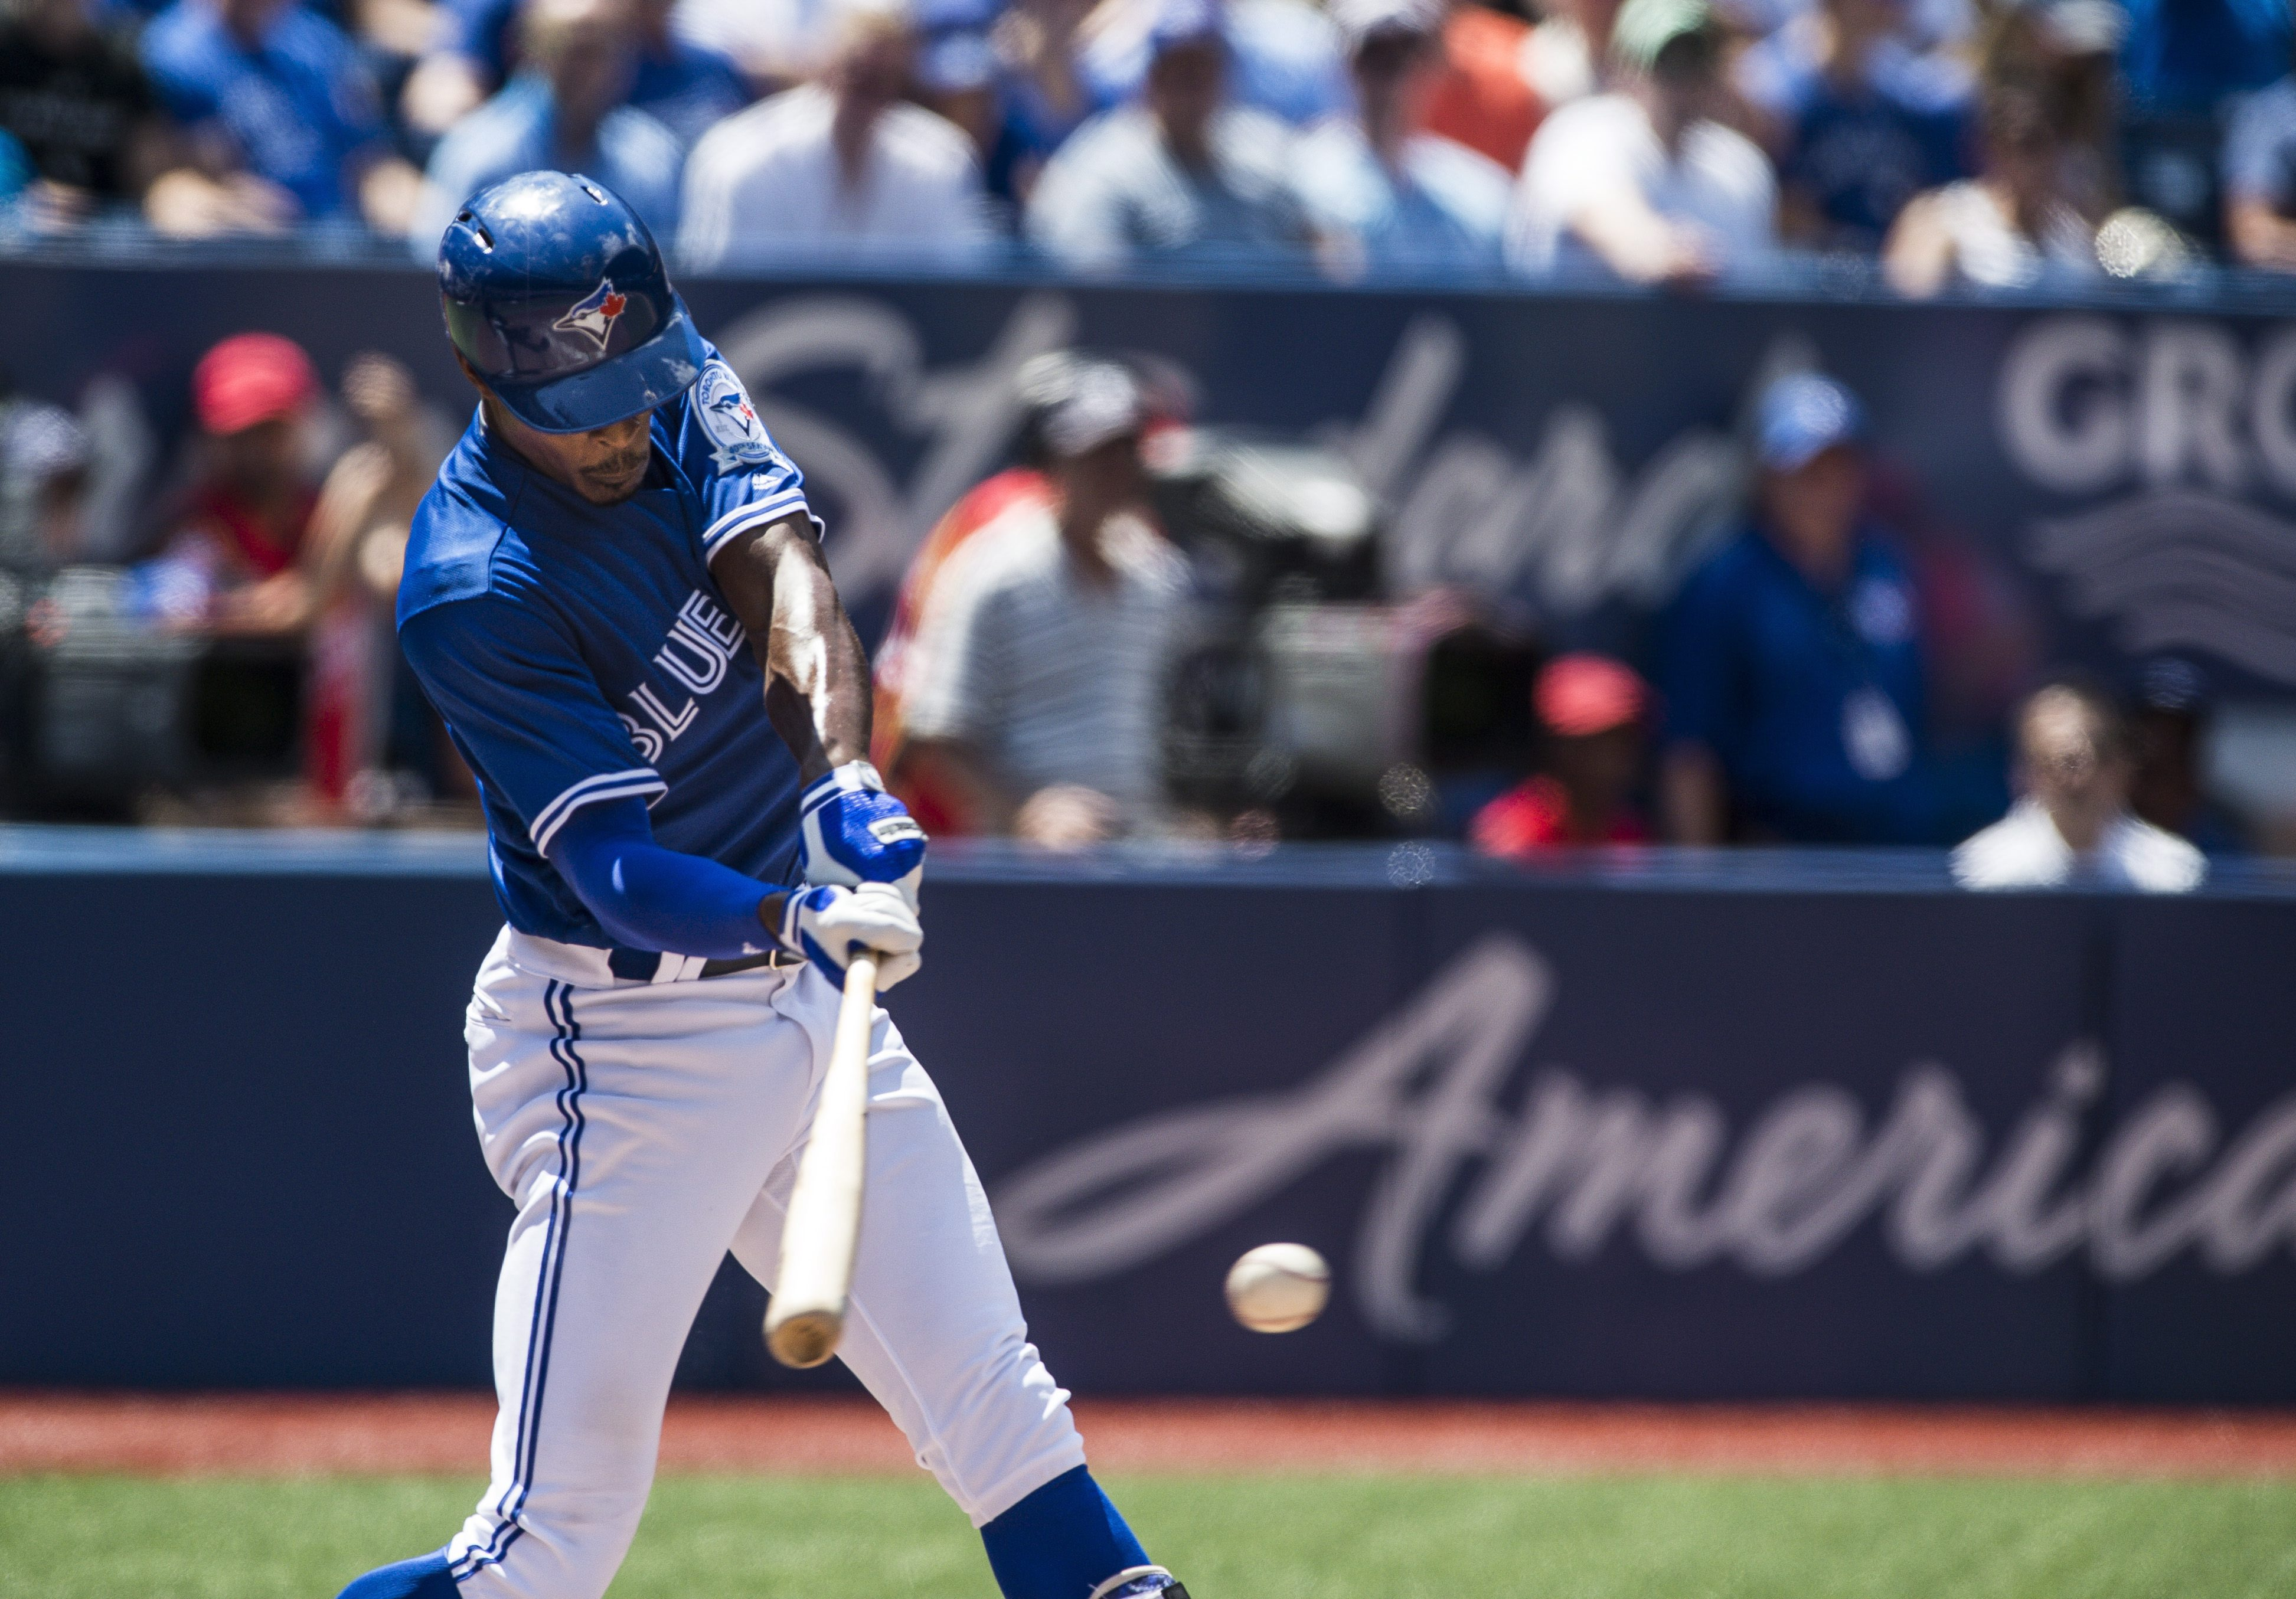 Toronto Blue Jays Melvin Upton Jr. hits a single against the San Diego Padres during the sixth inning of an interleague baseball game in Toronto, Wednesday, July 27, 2016. (Aaron Vincent Elkaim/The Canadian Press via AP)